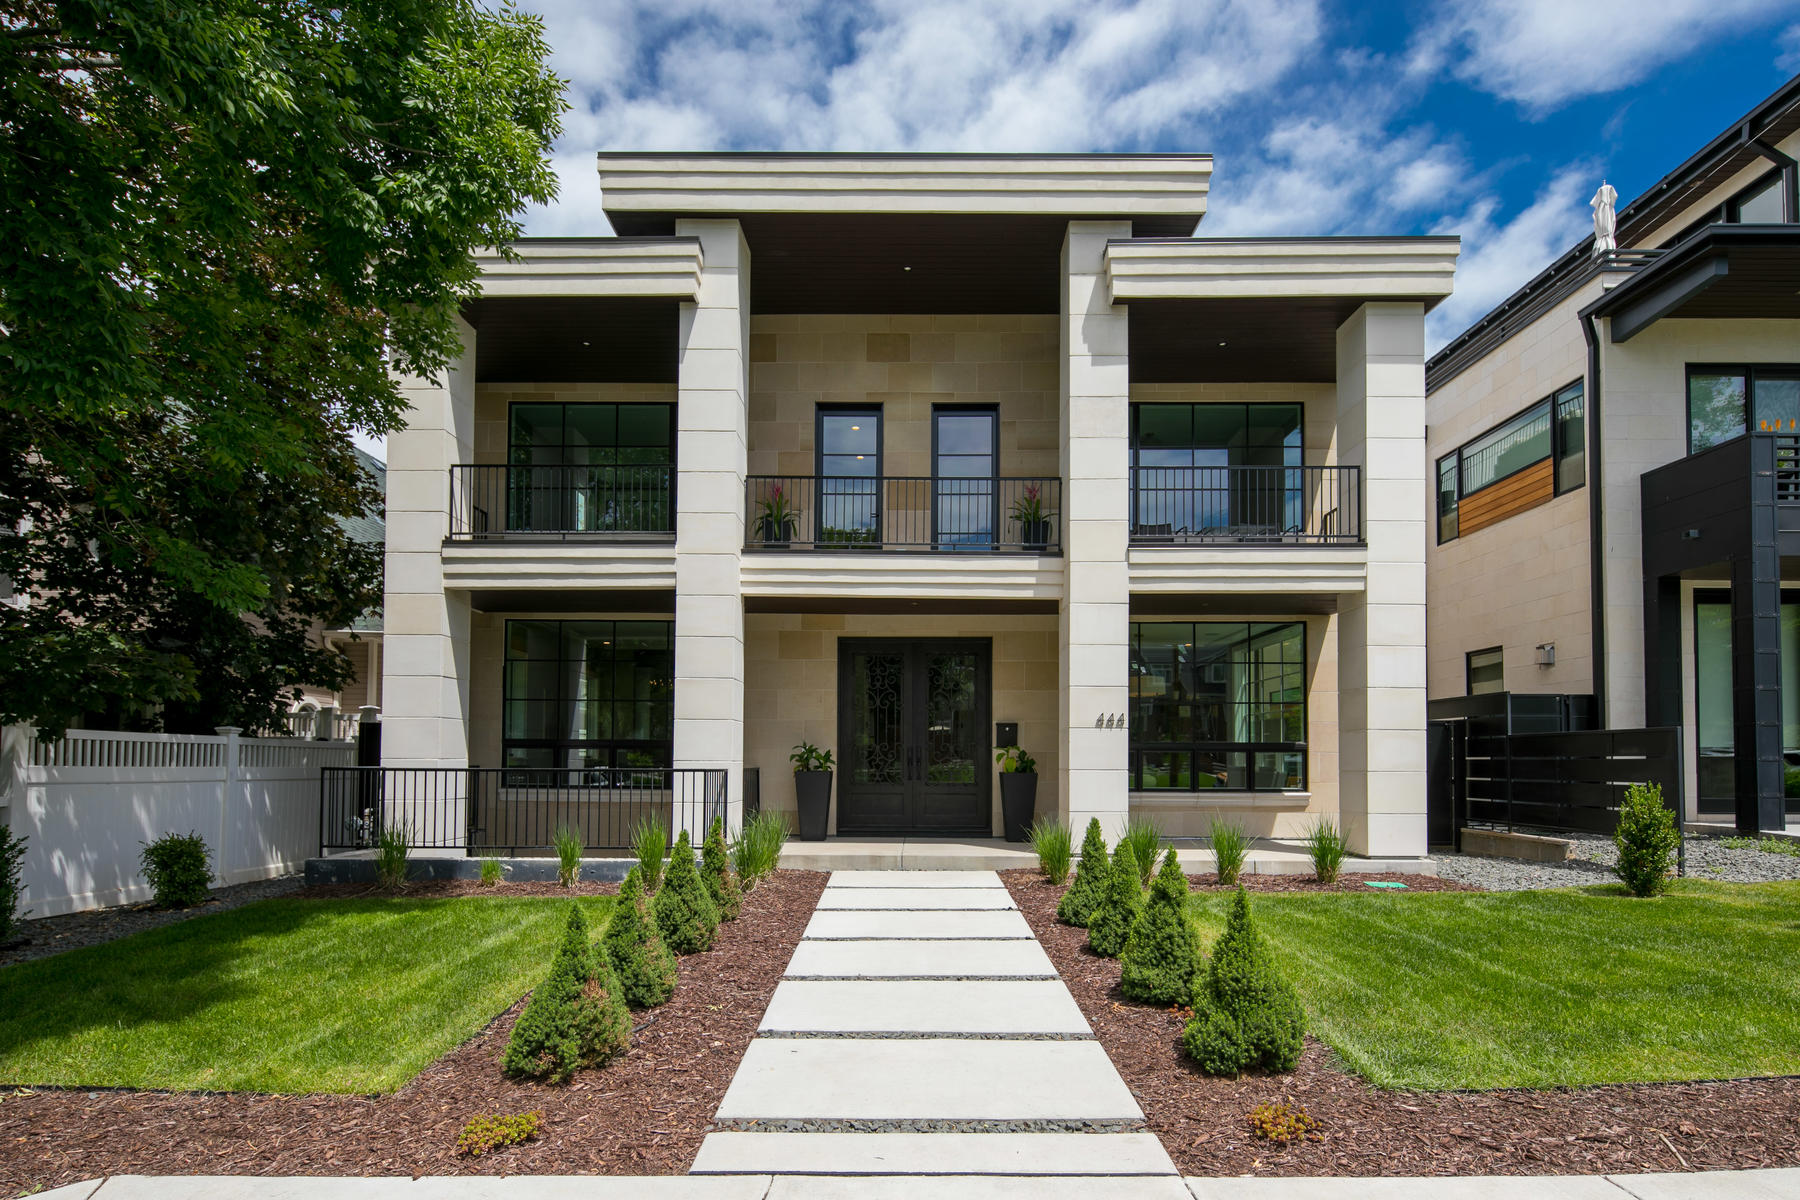 townhouses for Active at Introducing Unparalleled Luxury in Cherry Creek 444 Garfield Street Denver, Colorado 80206 United States